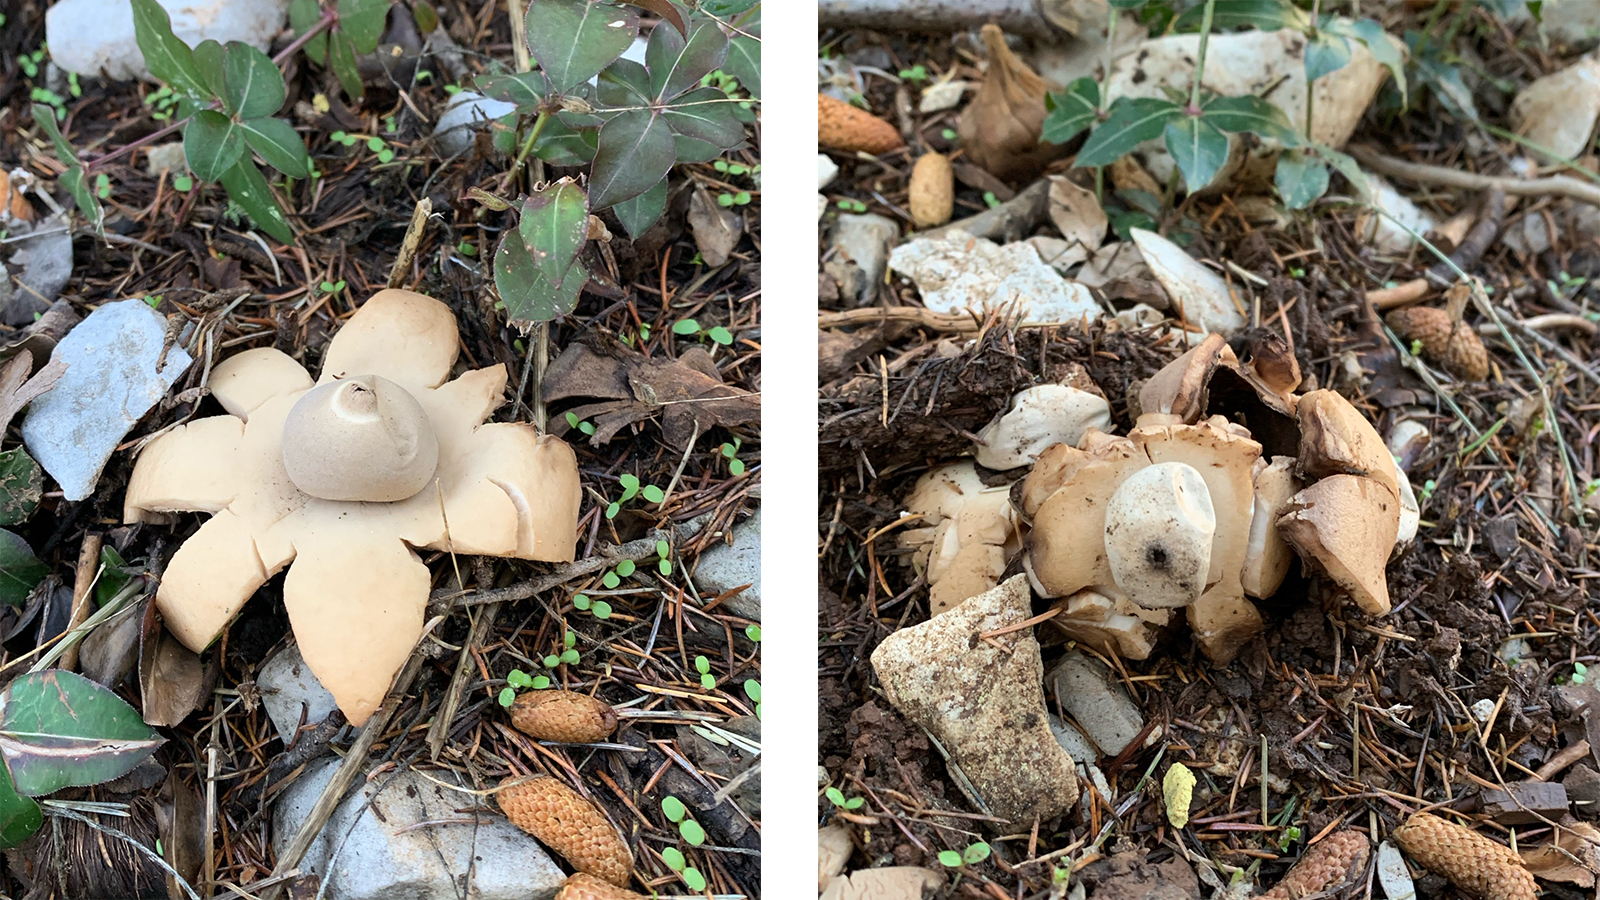 Left: A mature undamaged specimen of Geastrum triplex, Right: a damaged specimen that does not show anymore the morphological traits of the species enabling its identification. (Aïn Zhalta Cedar Forest, Nov. 2020. © Rana El Zein)